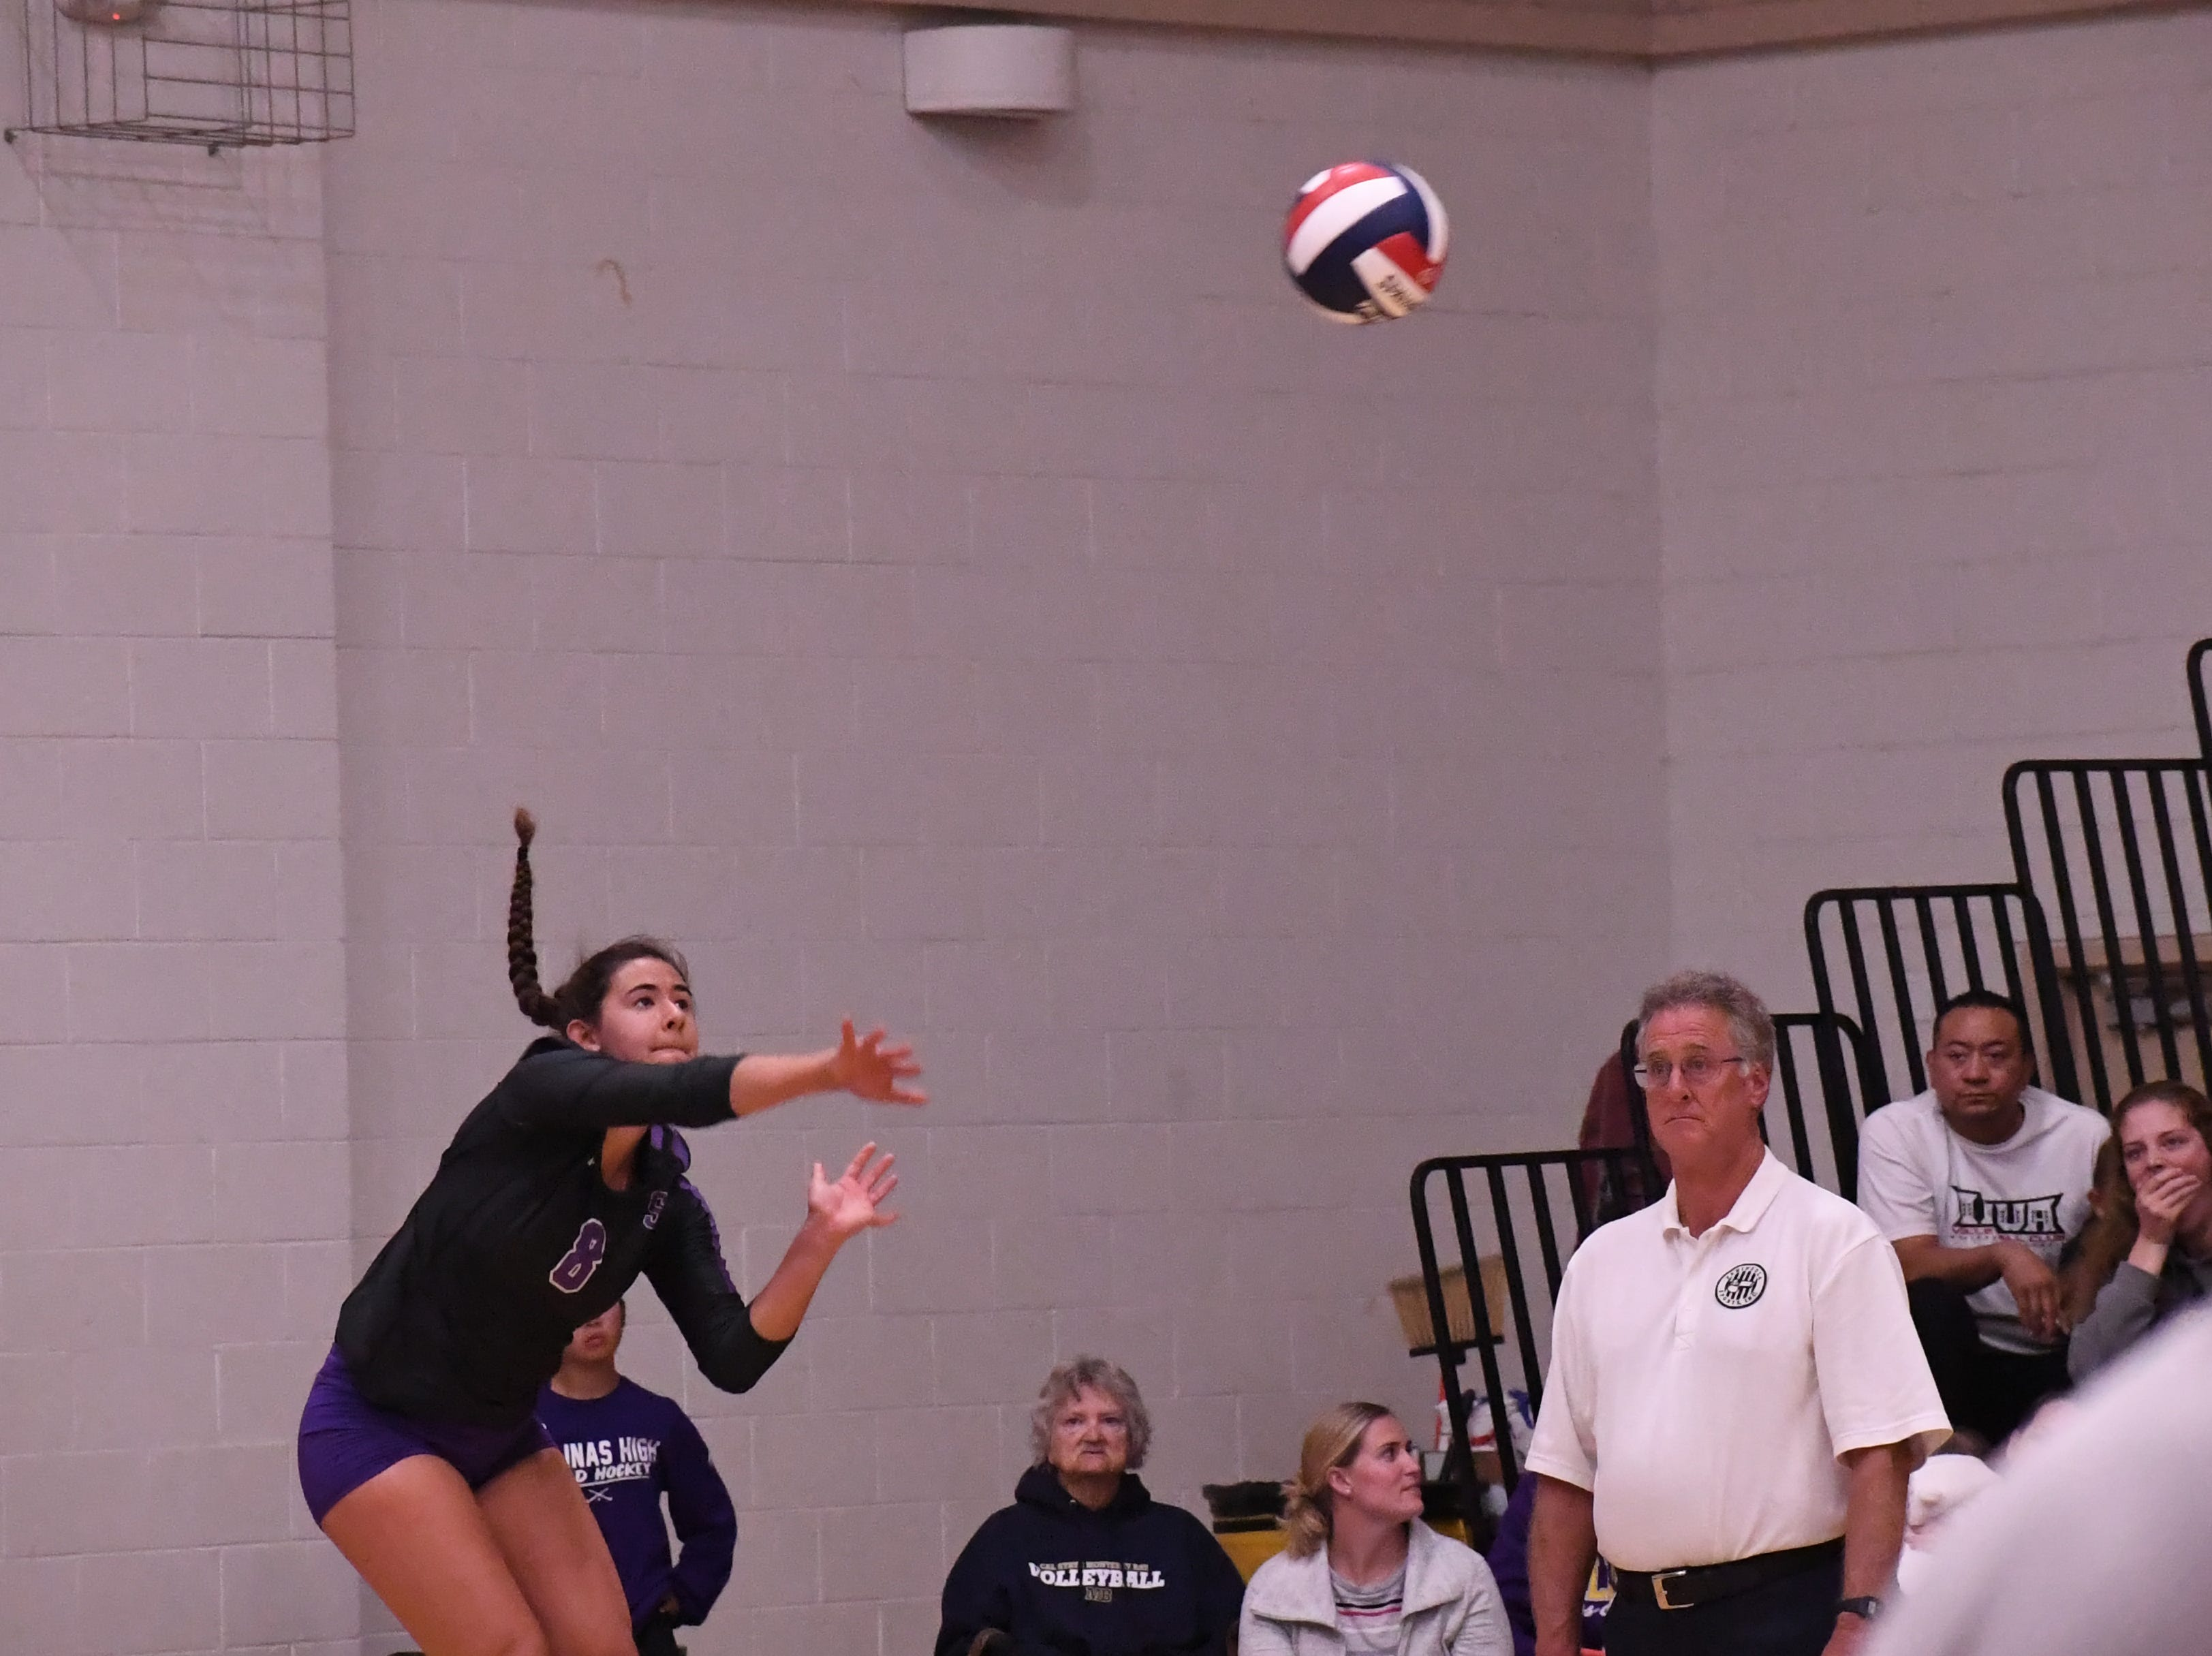 Middle blocker Christina Chagnon (8) launches a jump serve in the second set.